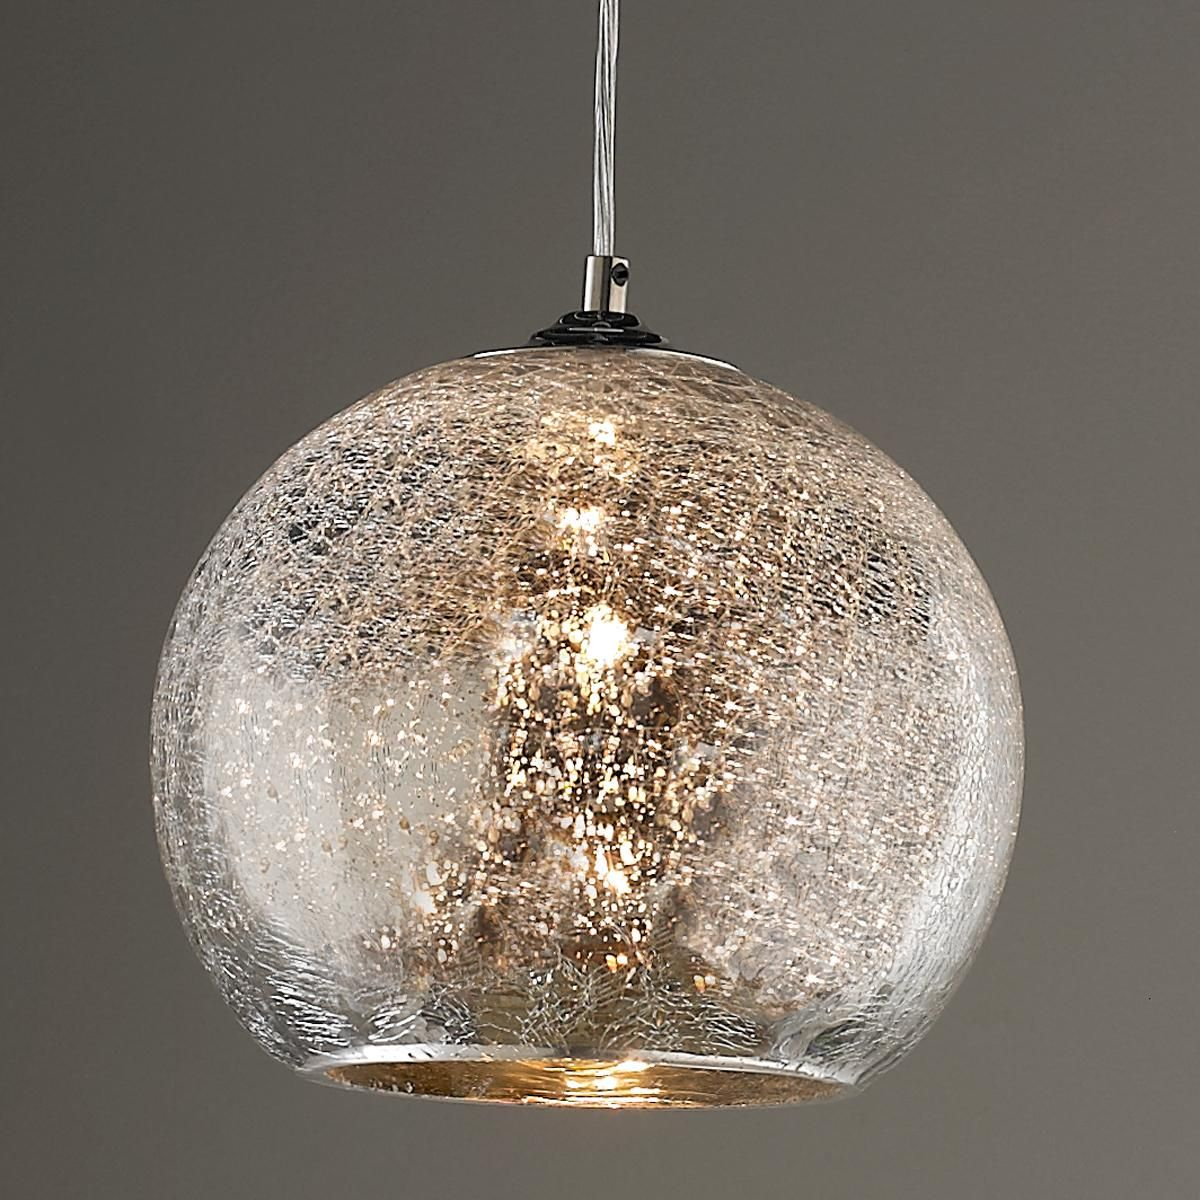 Light Pendants Crackled Mercury Bowl Pendant Light Pendant Lighting